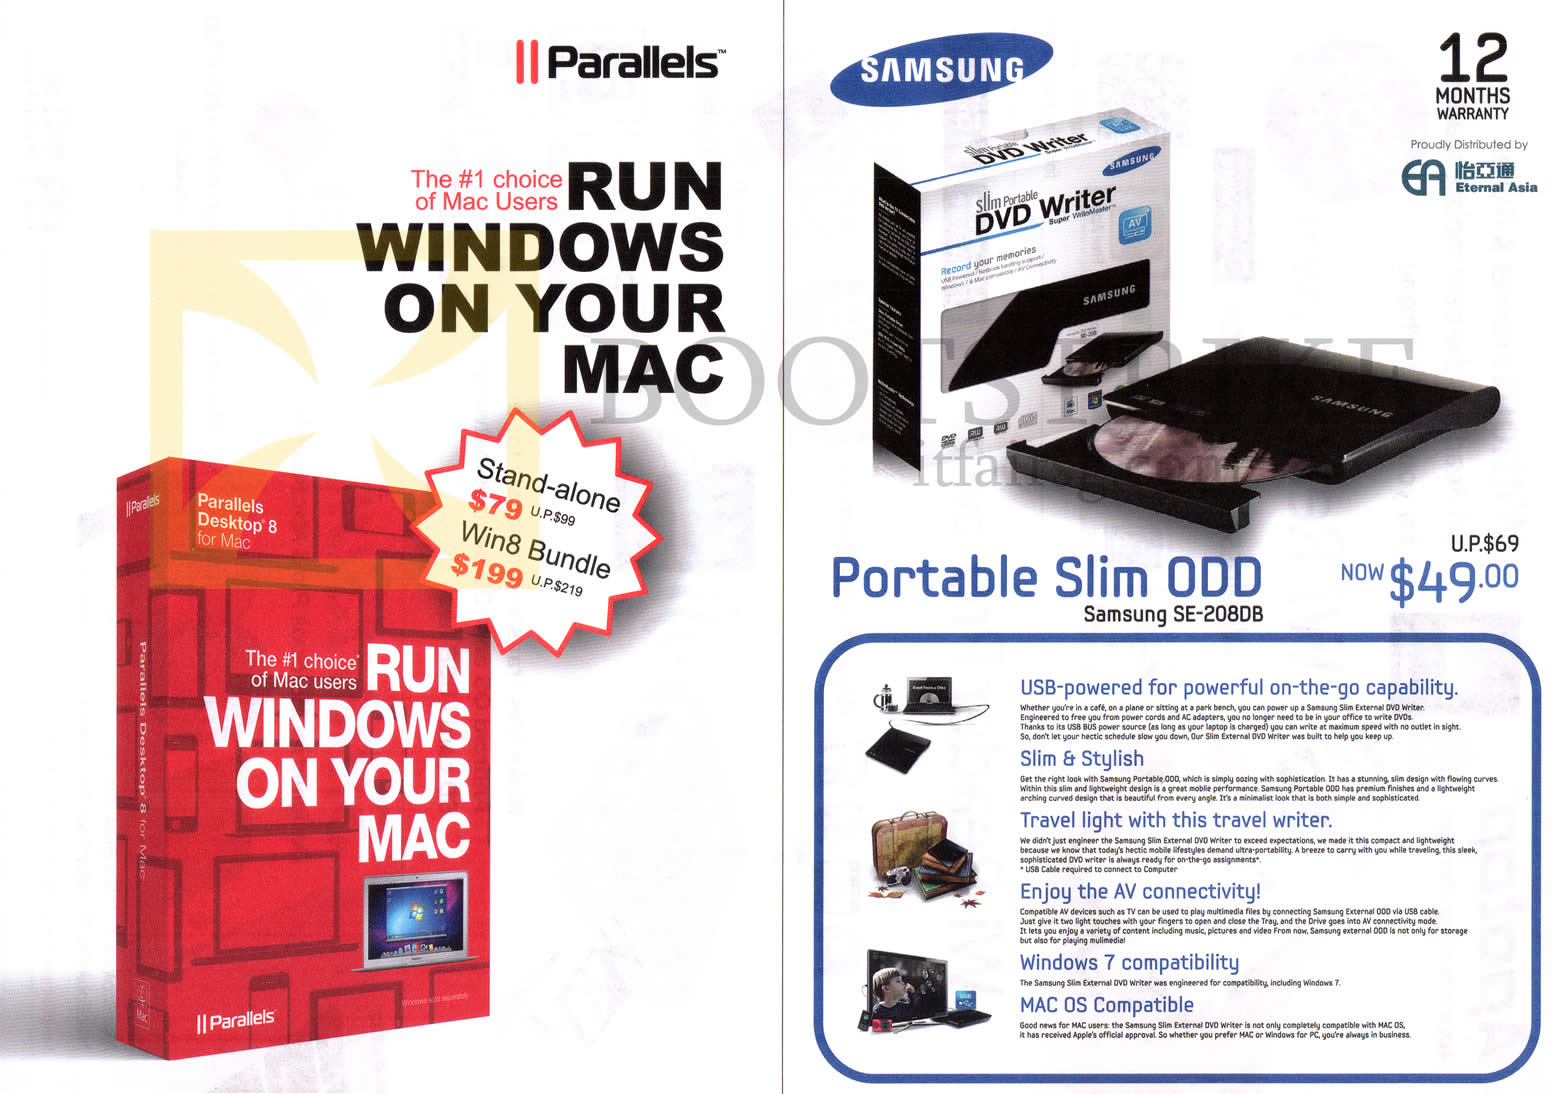 IT SHOW 2013 price list image brochure of Eternal Asia Parallels Desktop 8, Samsung Optical DVD Writer SE-208DB